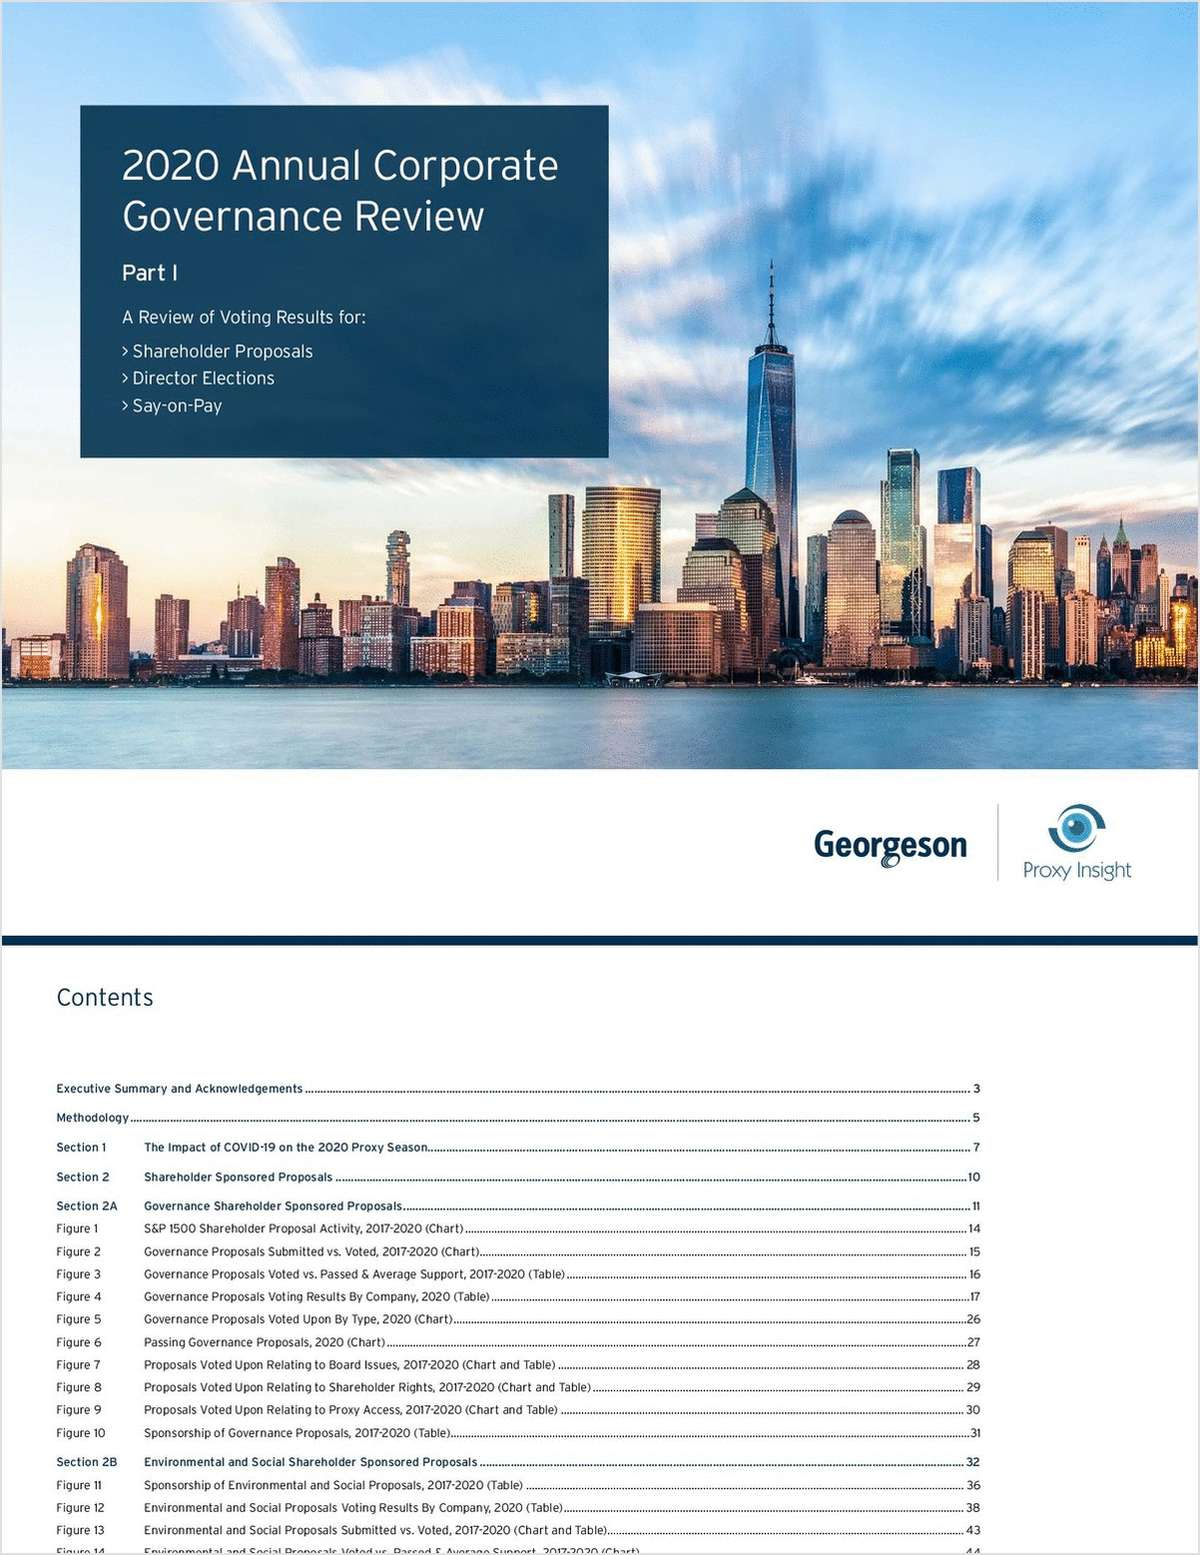 2020 Annual Corporate Governance Review